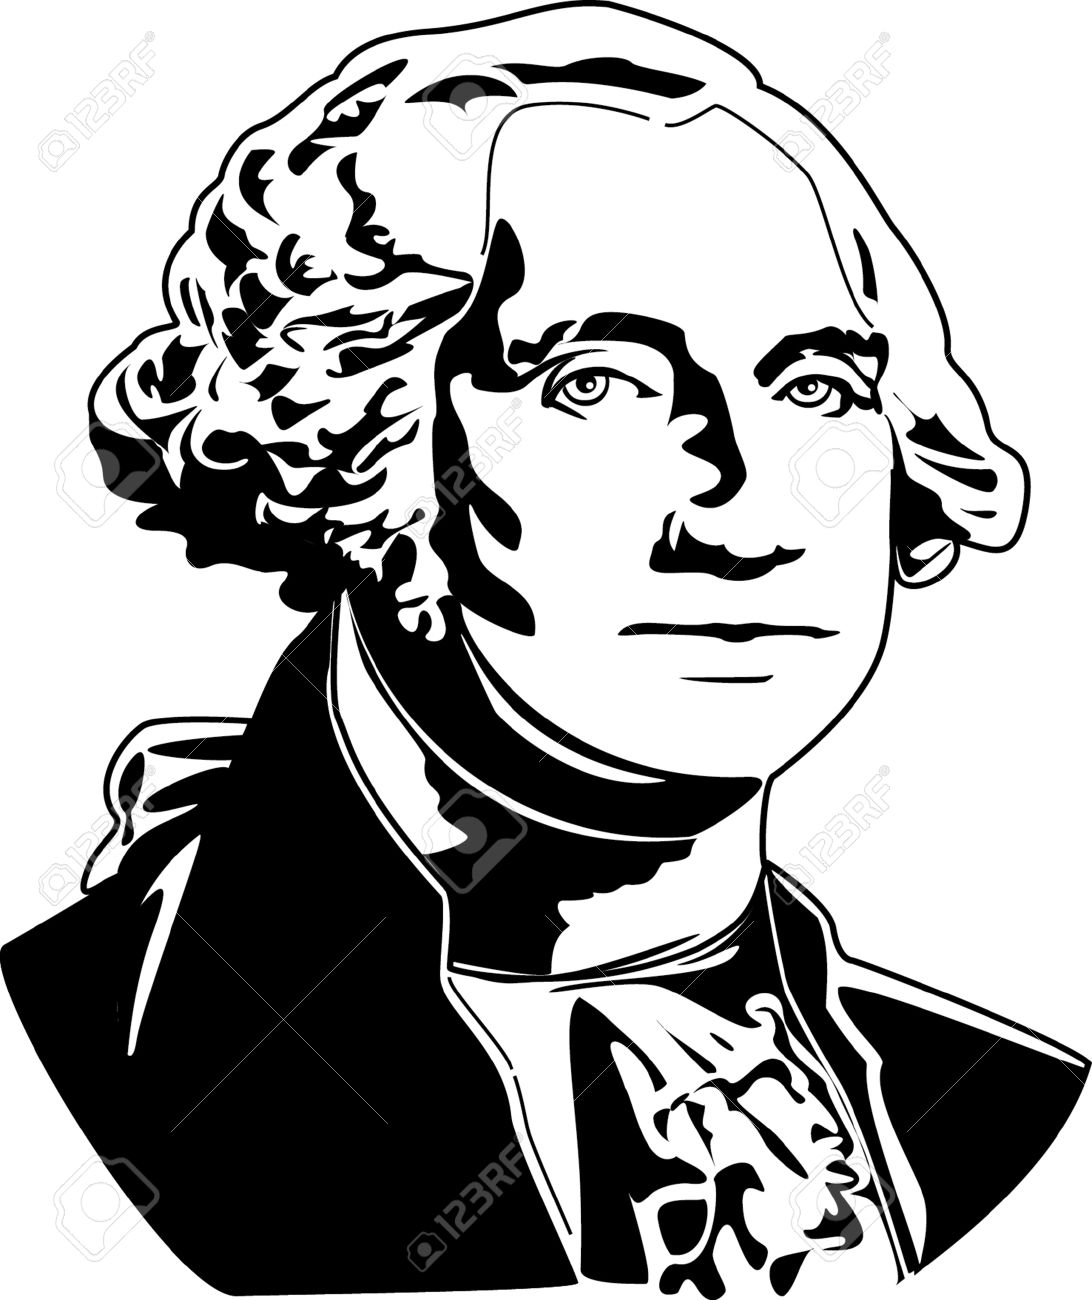 Free George Washington Silhouette, Download Free Clip Art.